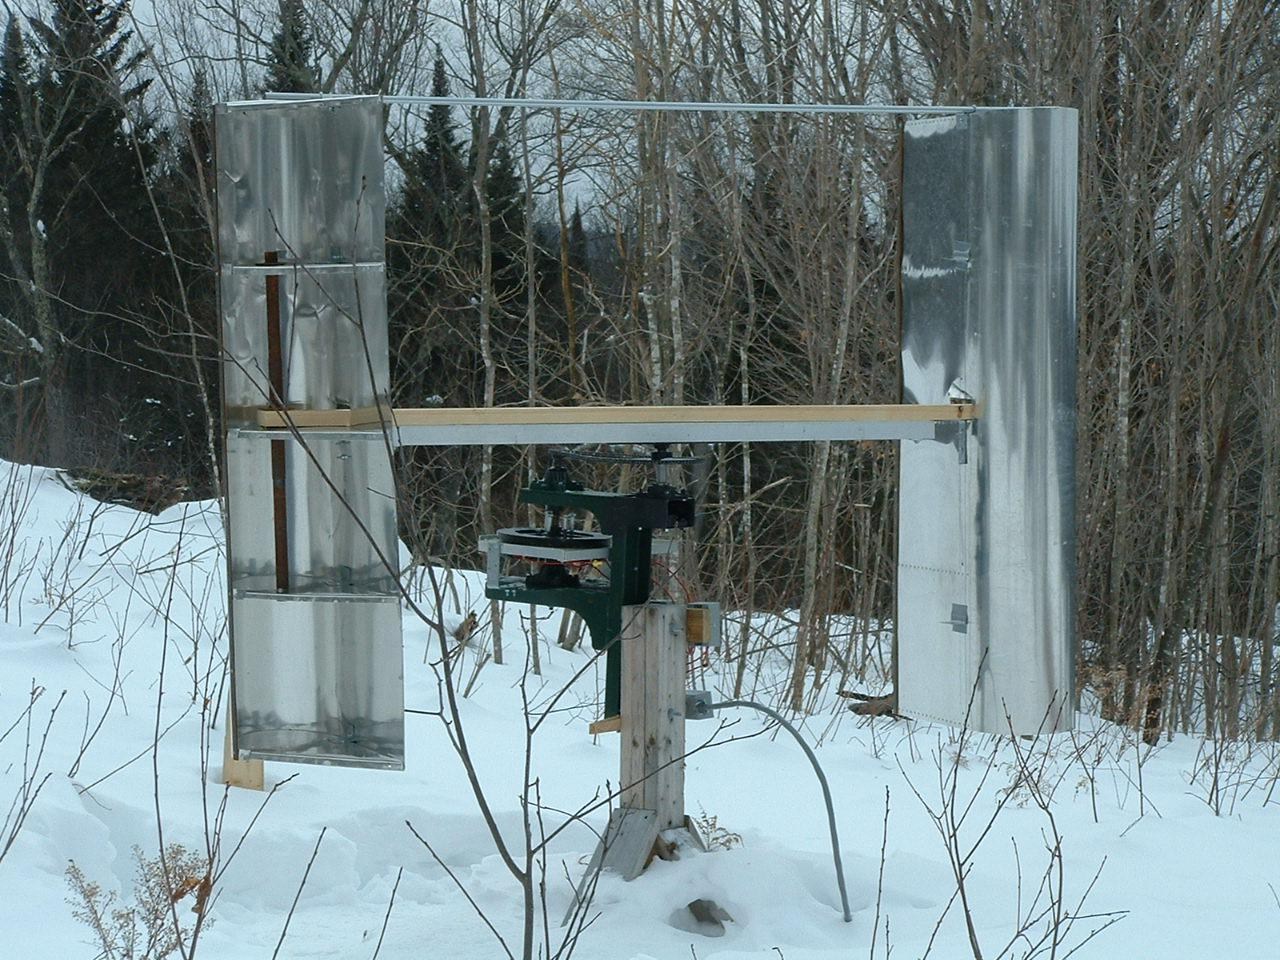 DIY vertical wind turbine: how to build a wind turbine with a vertical axis of rotation 2